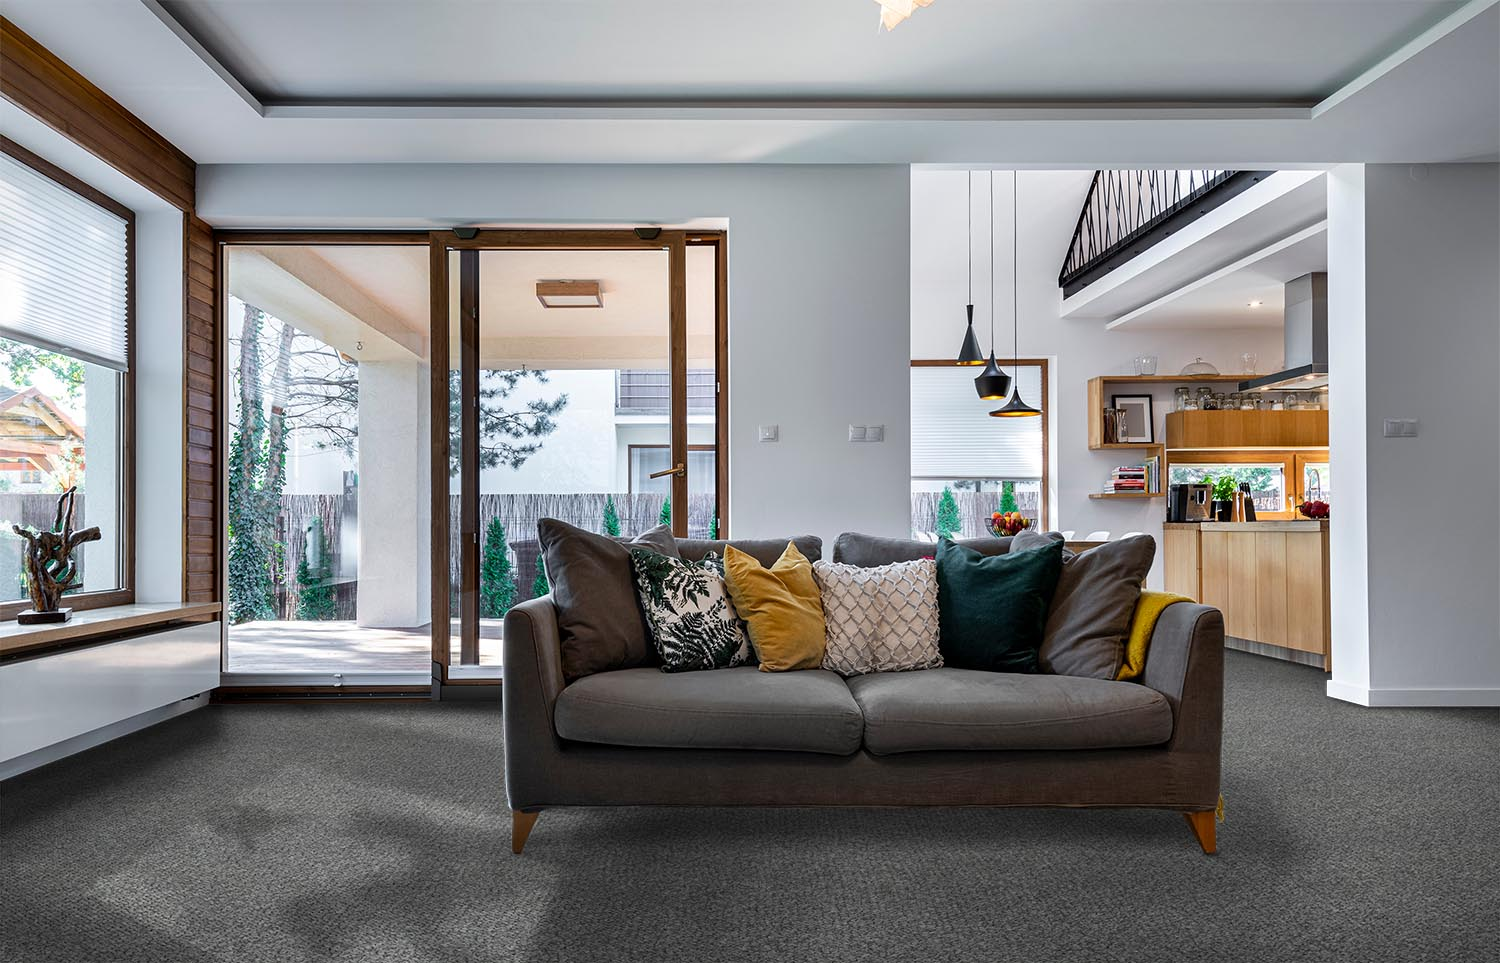 Immerse - Plunged contemporary living room